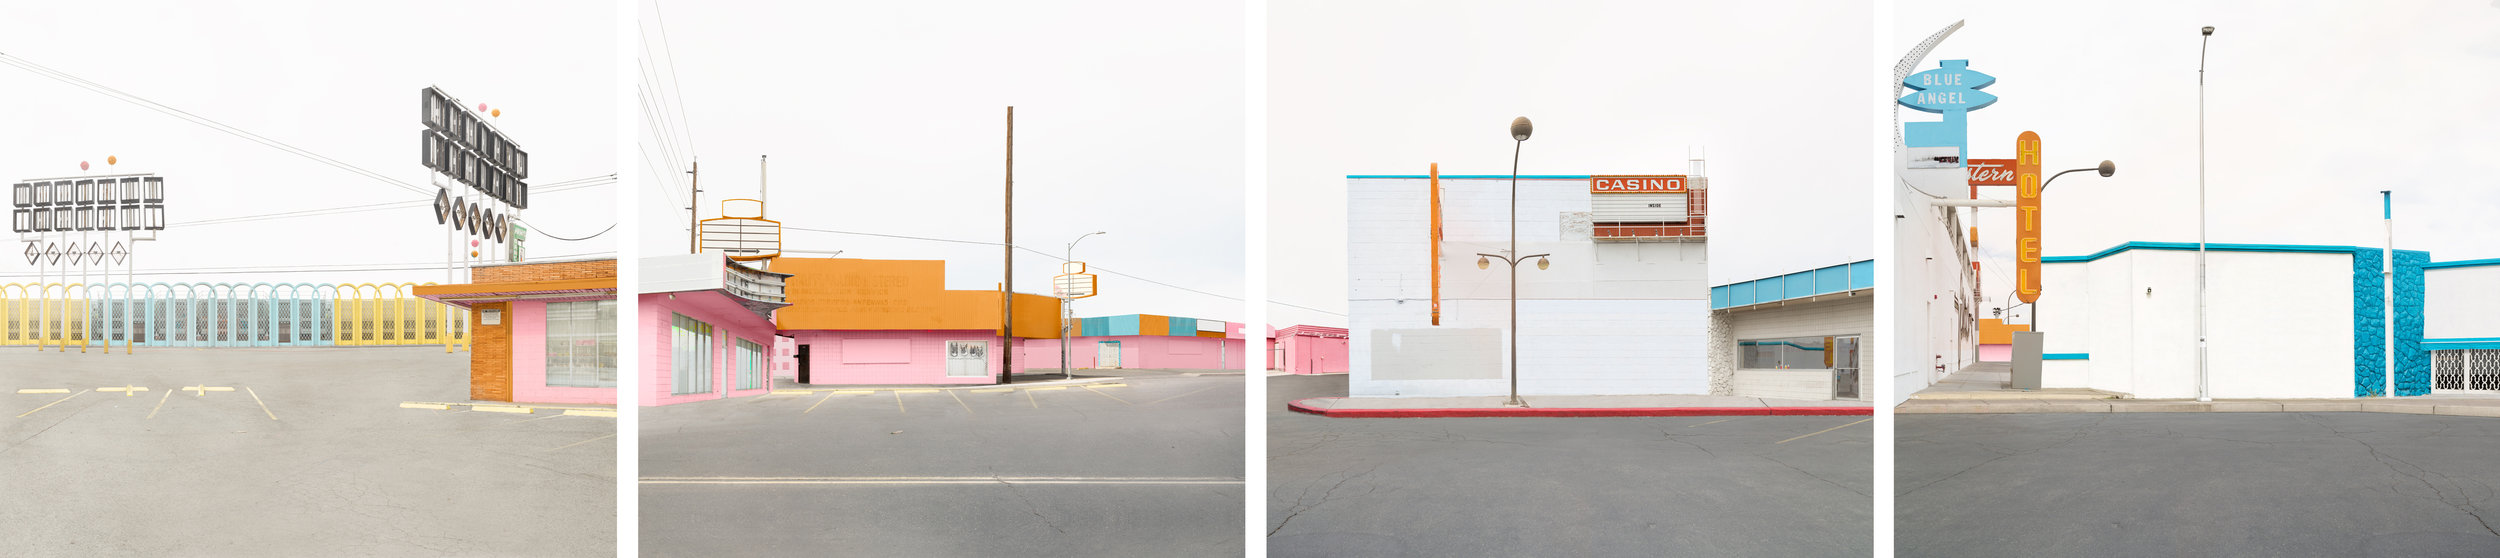 Blue Crush,  4 panel piece, 20 x 88 inches, archival pigment prints, 2016